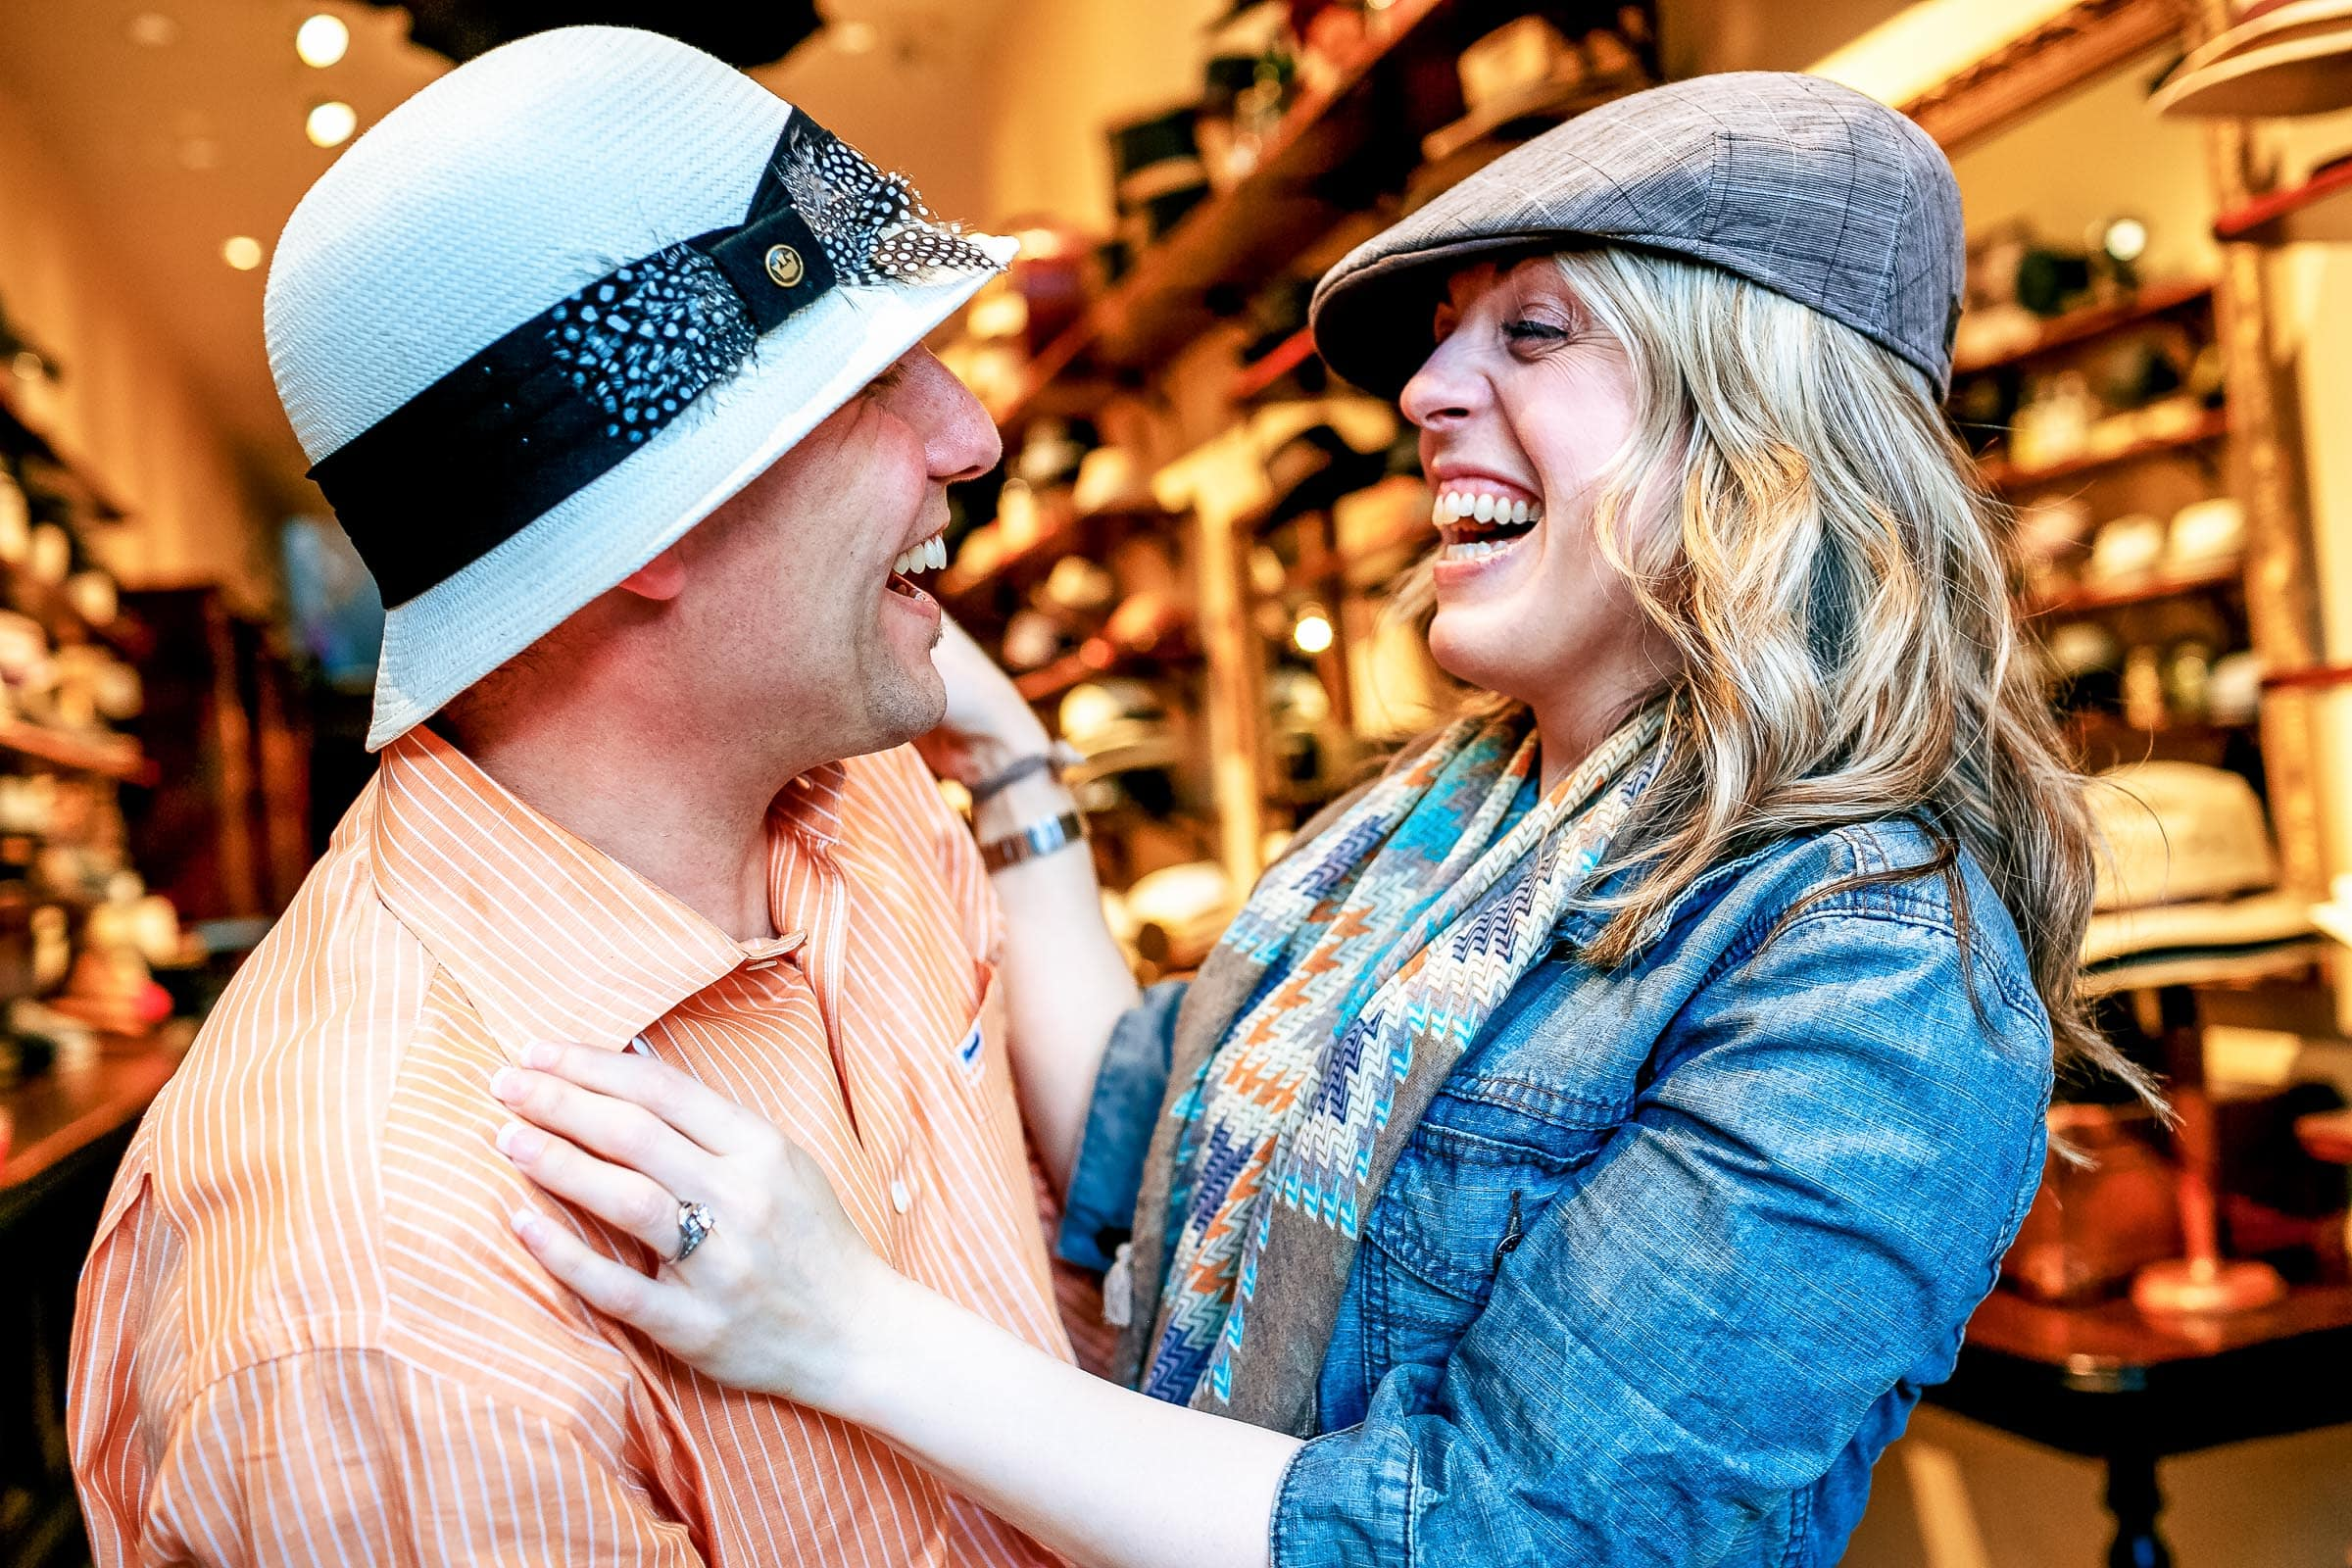 A fun laughing couple wearing hats along Northwest Nob Hill during their Portland Engagement Date